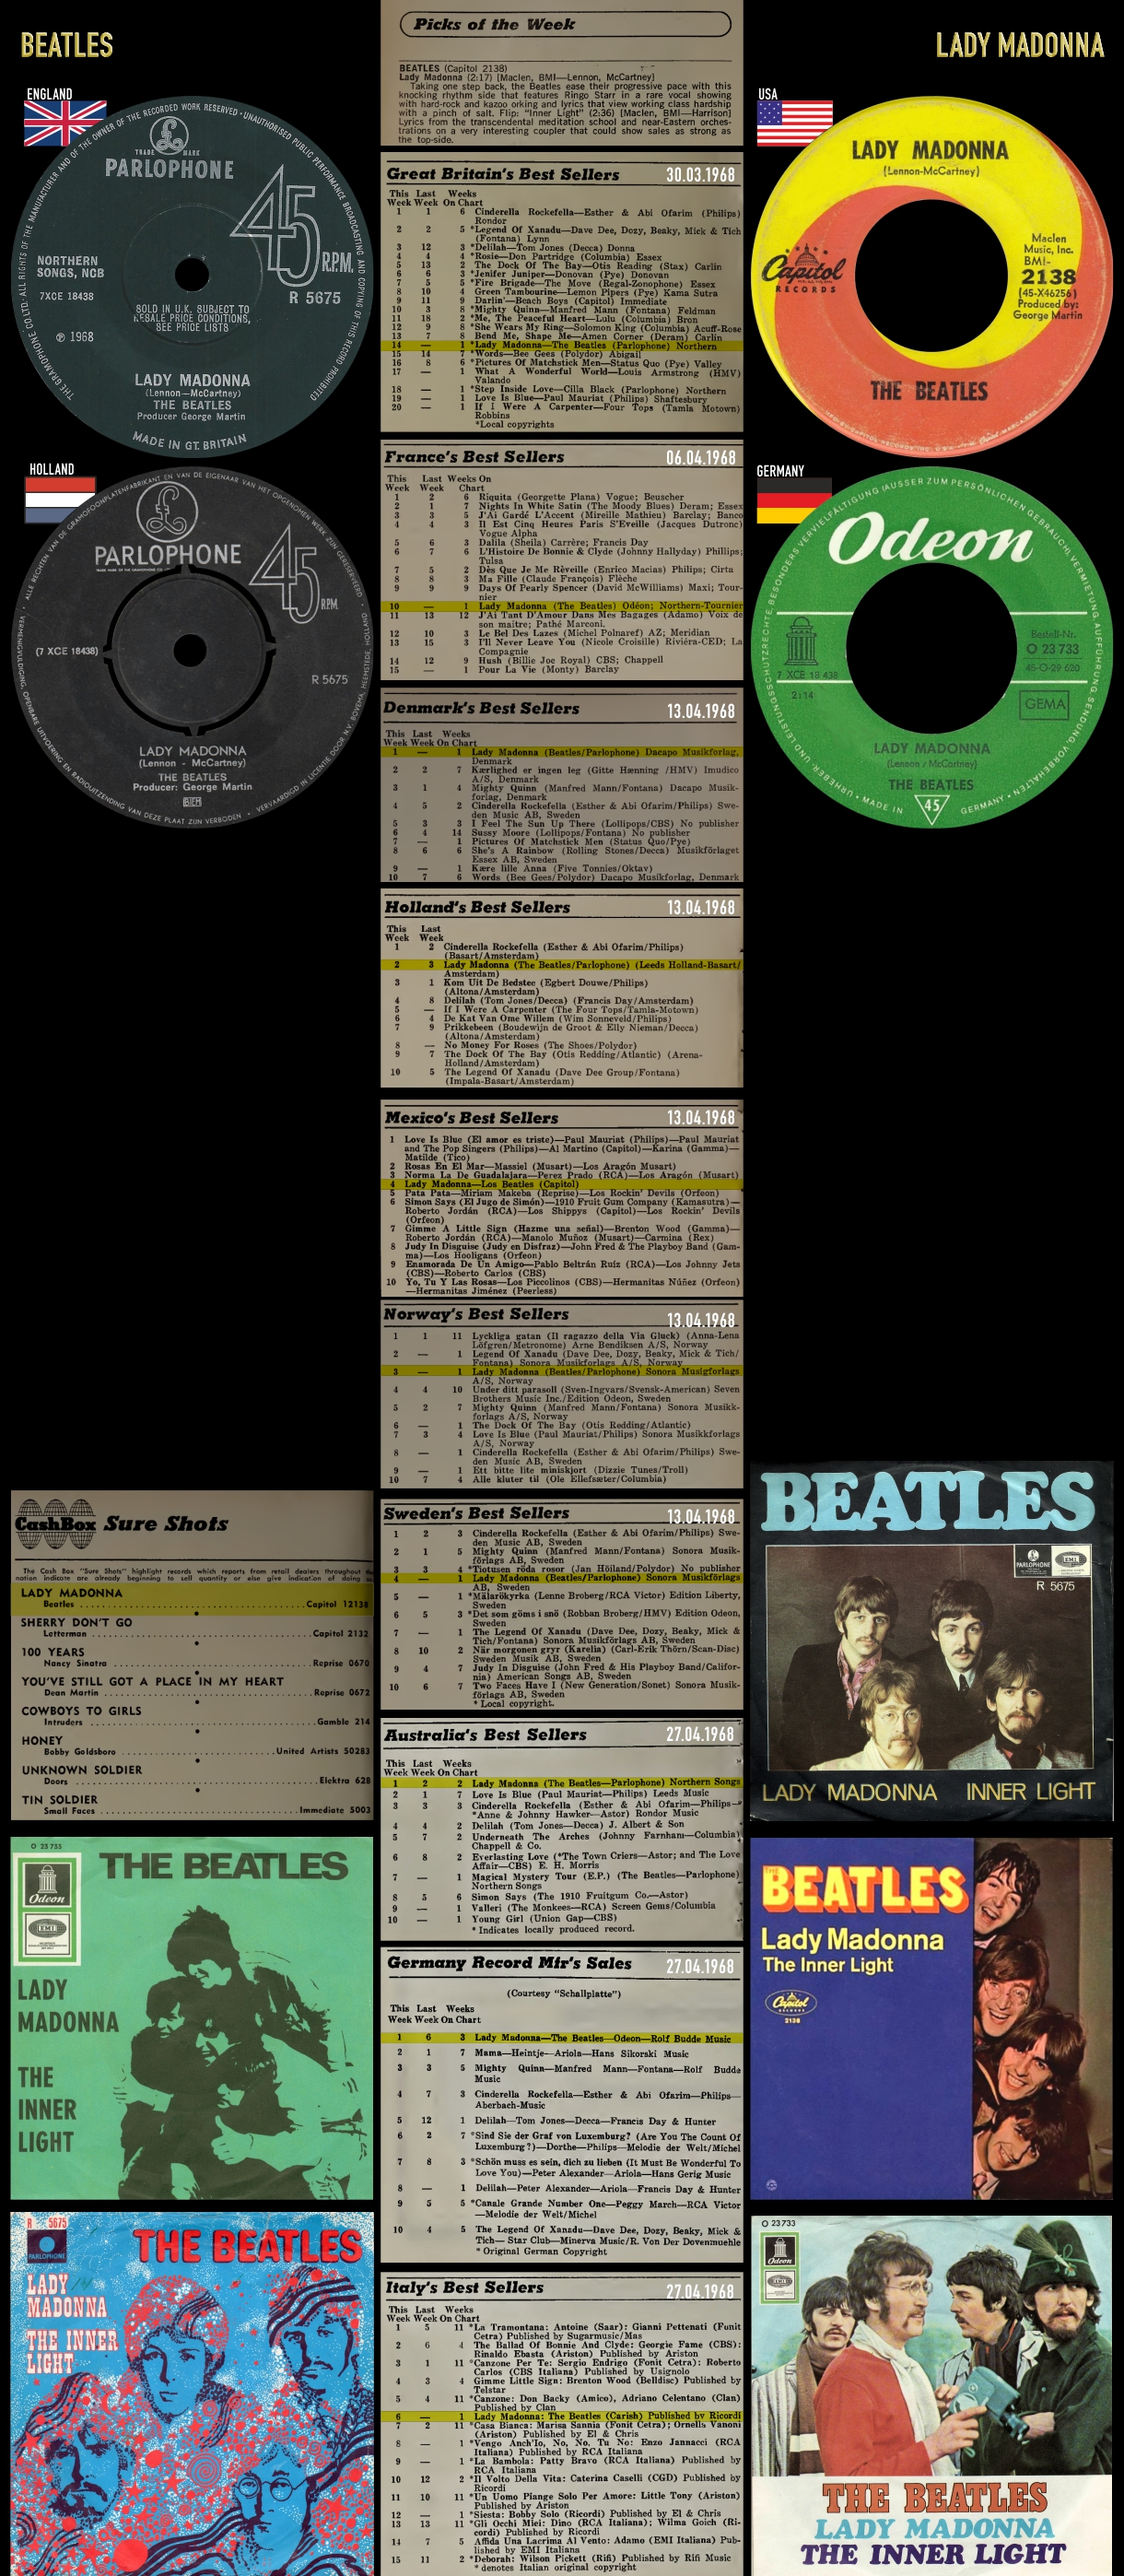 680323_Beatles_Lady Madonna